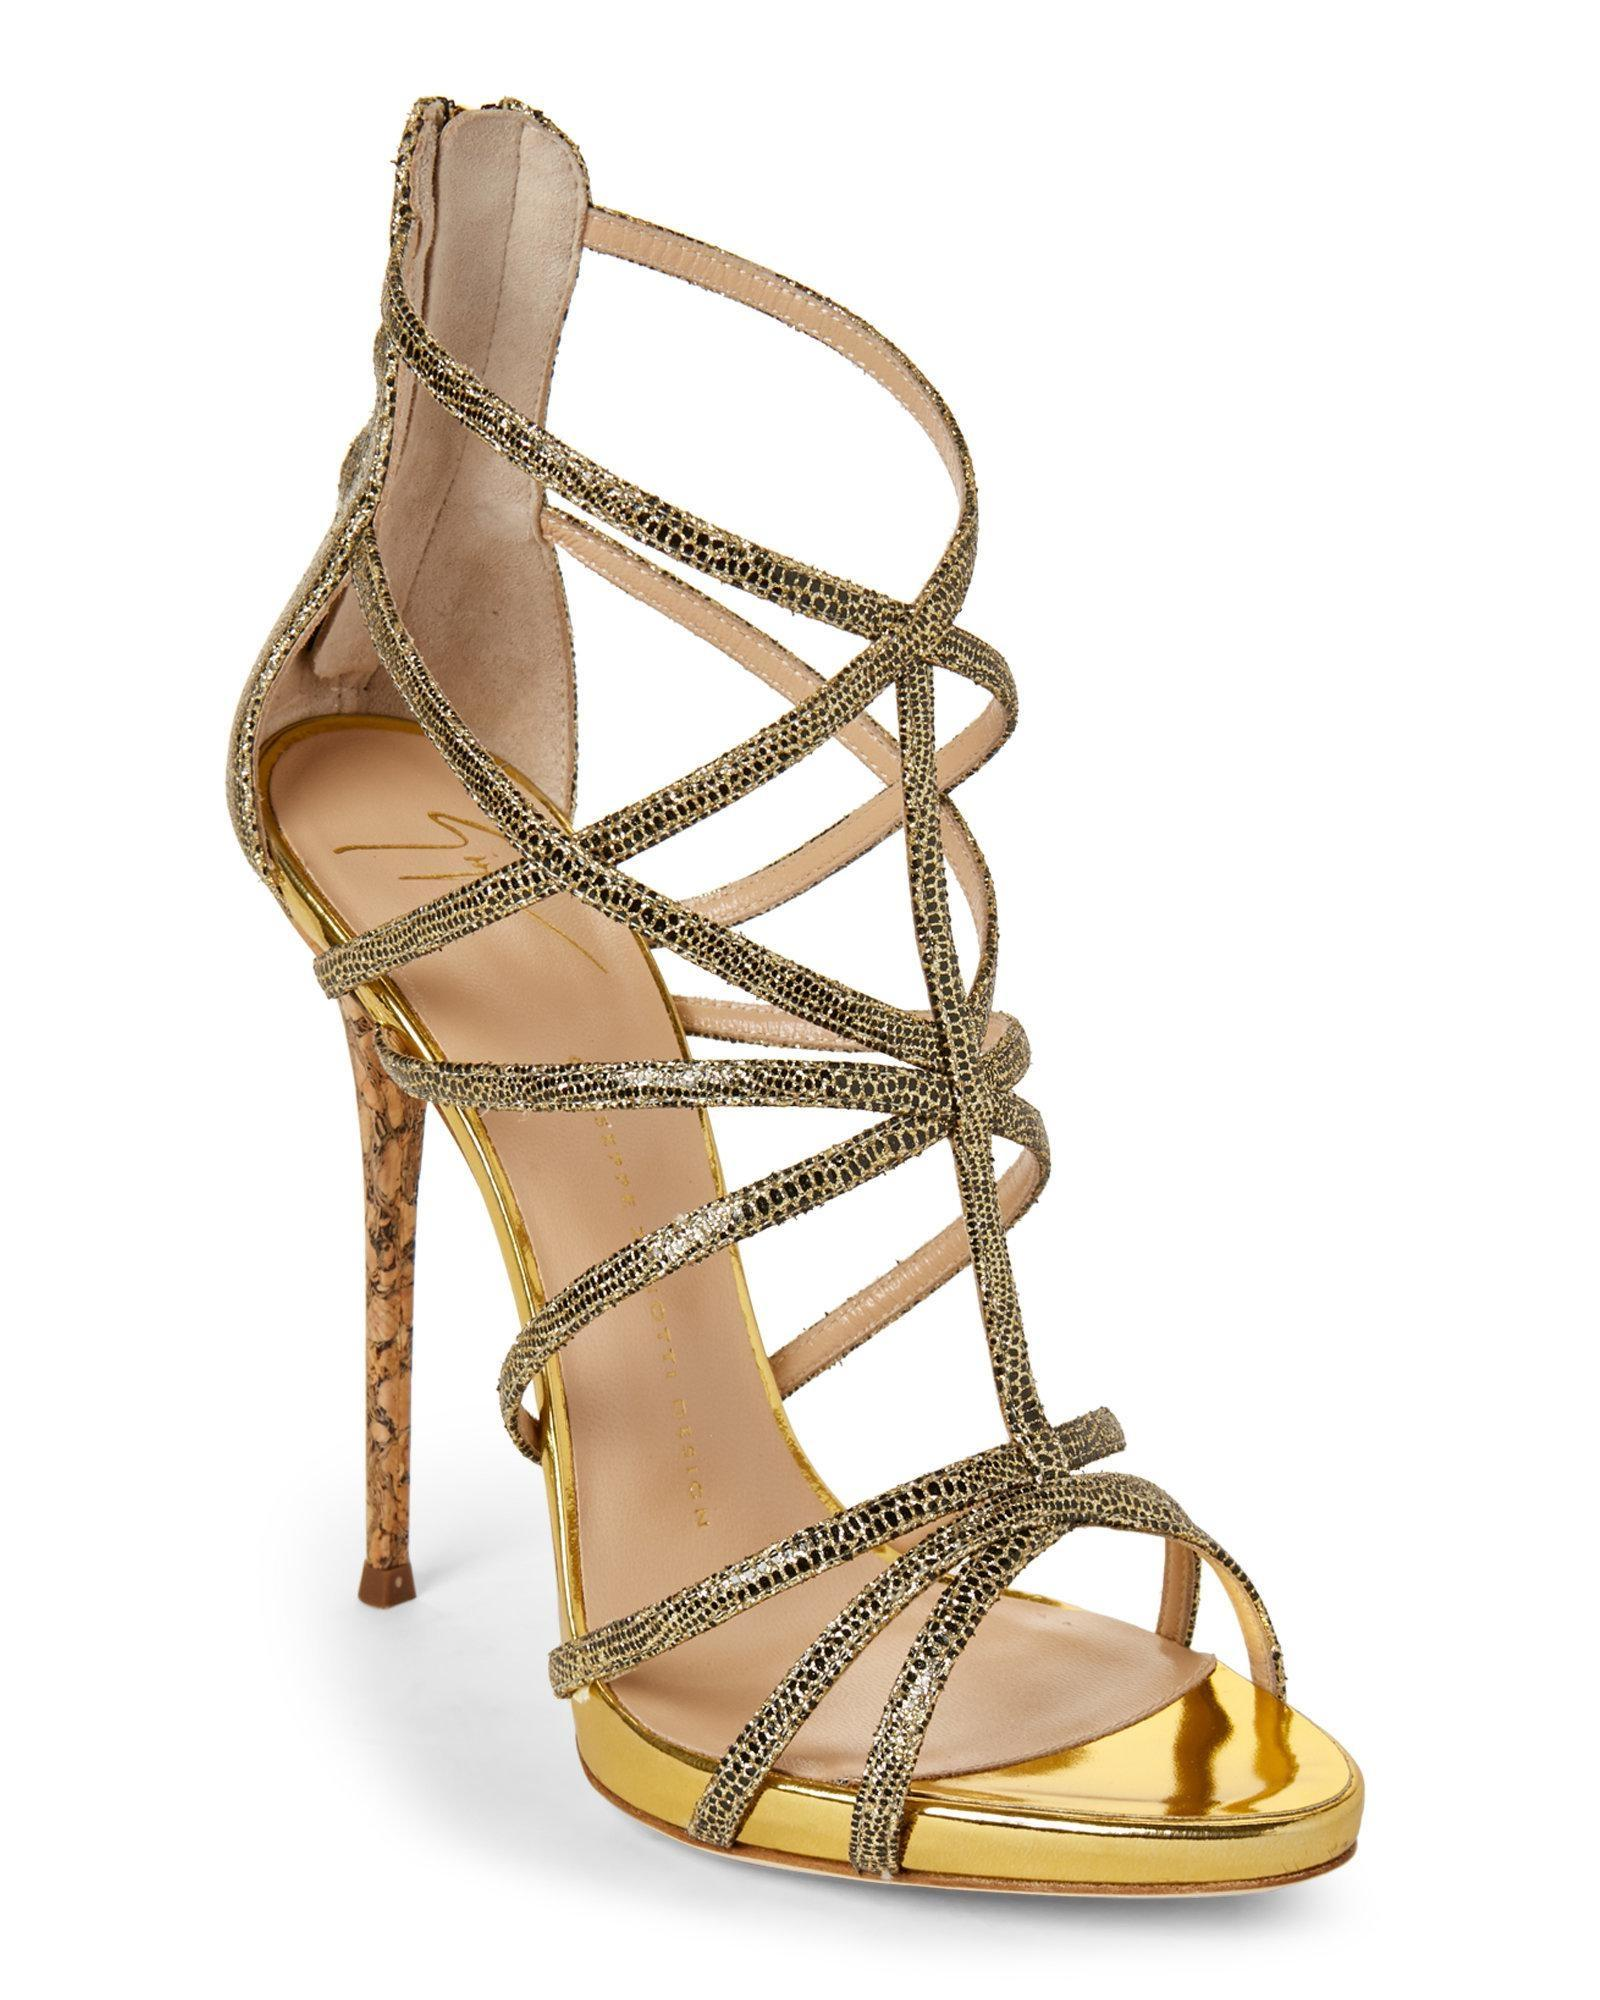 Giuseppe Zanotti Gold Black Glitter Cork Reptile-embossed Cage Sandals Size EU 37.5 (Approx. US 7.5) Regular (M, B)